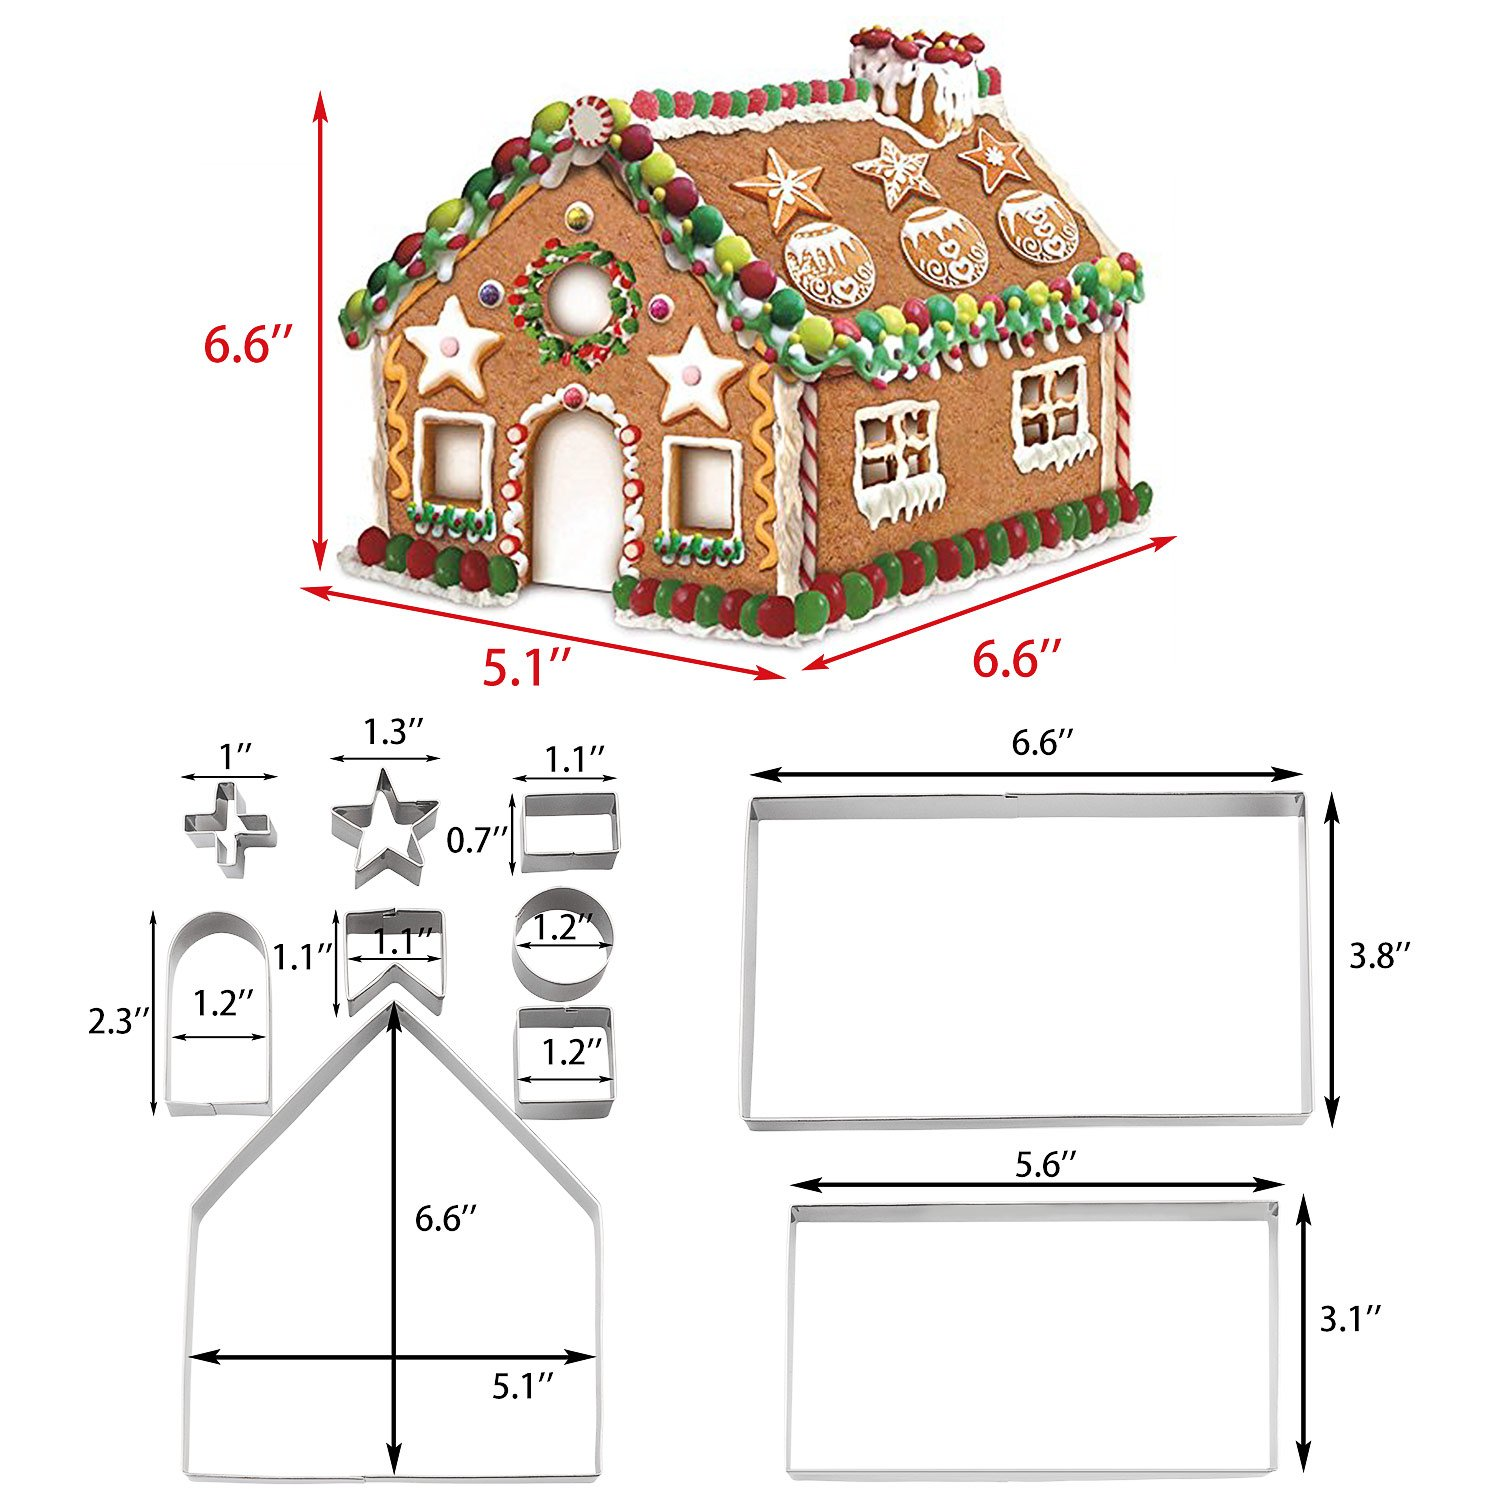 Christmas Cookie Cutters Set - 3D Christmas Cookie Cutters for Holiday Winter &Christmas Cutters Kit ,Gift Box packaging (10 Piece Gingerbread House Cookie Cutters)